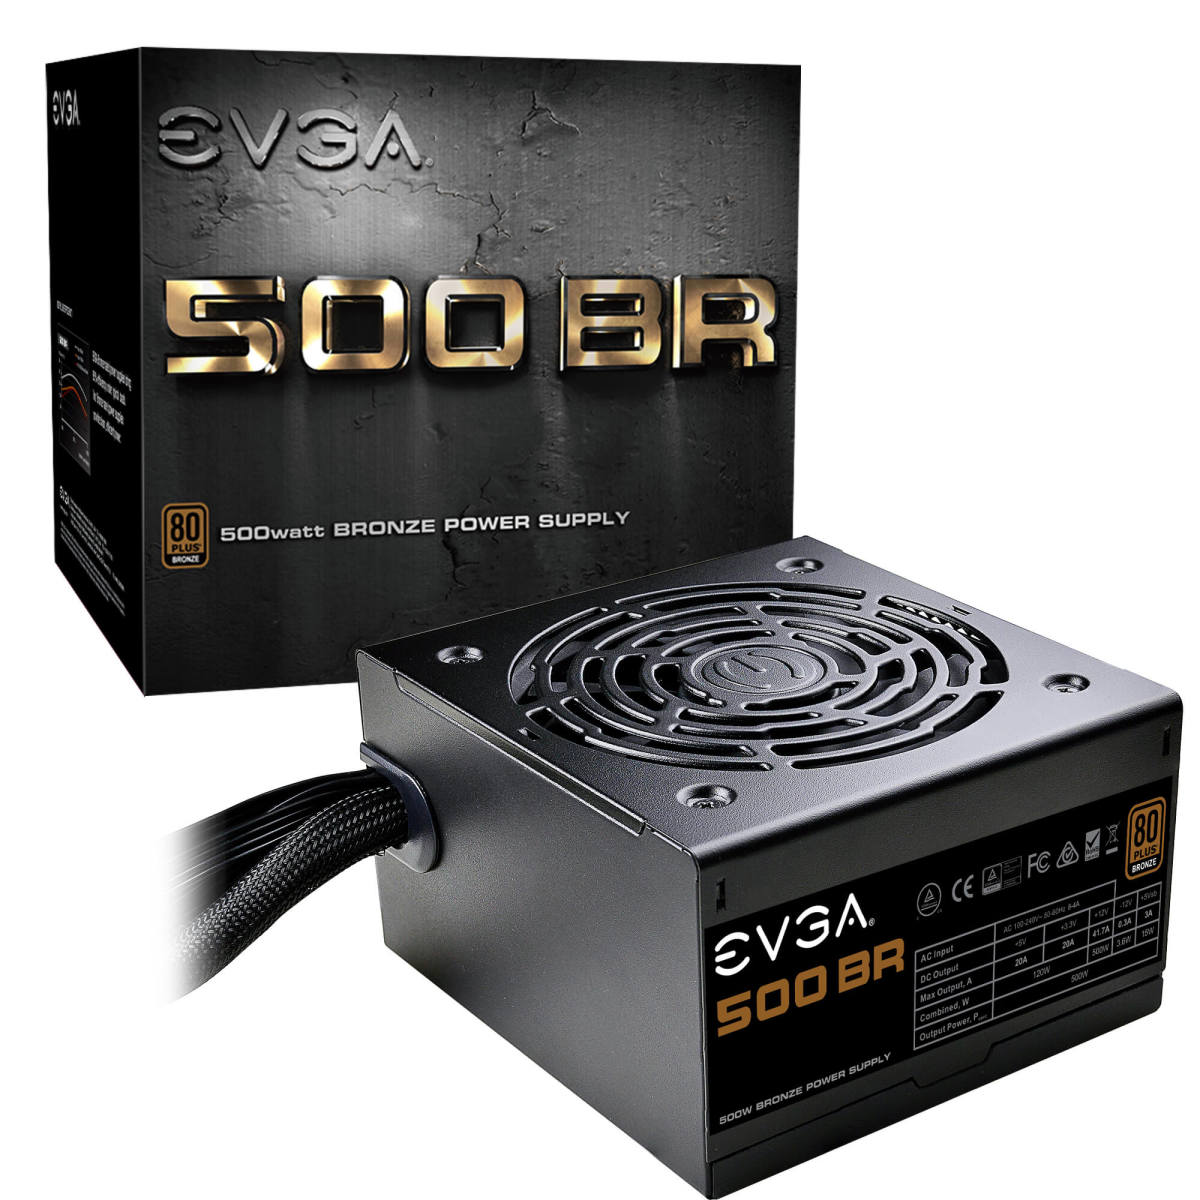 Recommended PSU for this Cheap Gaming PC Build